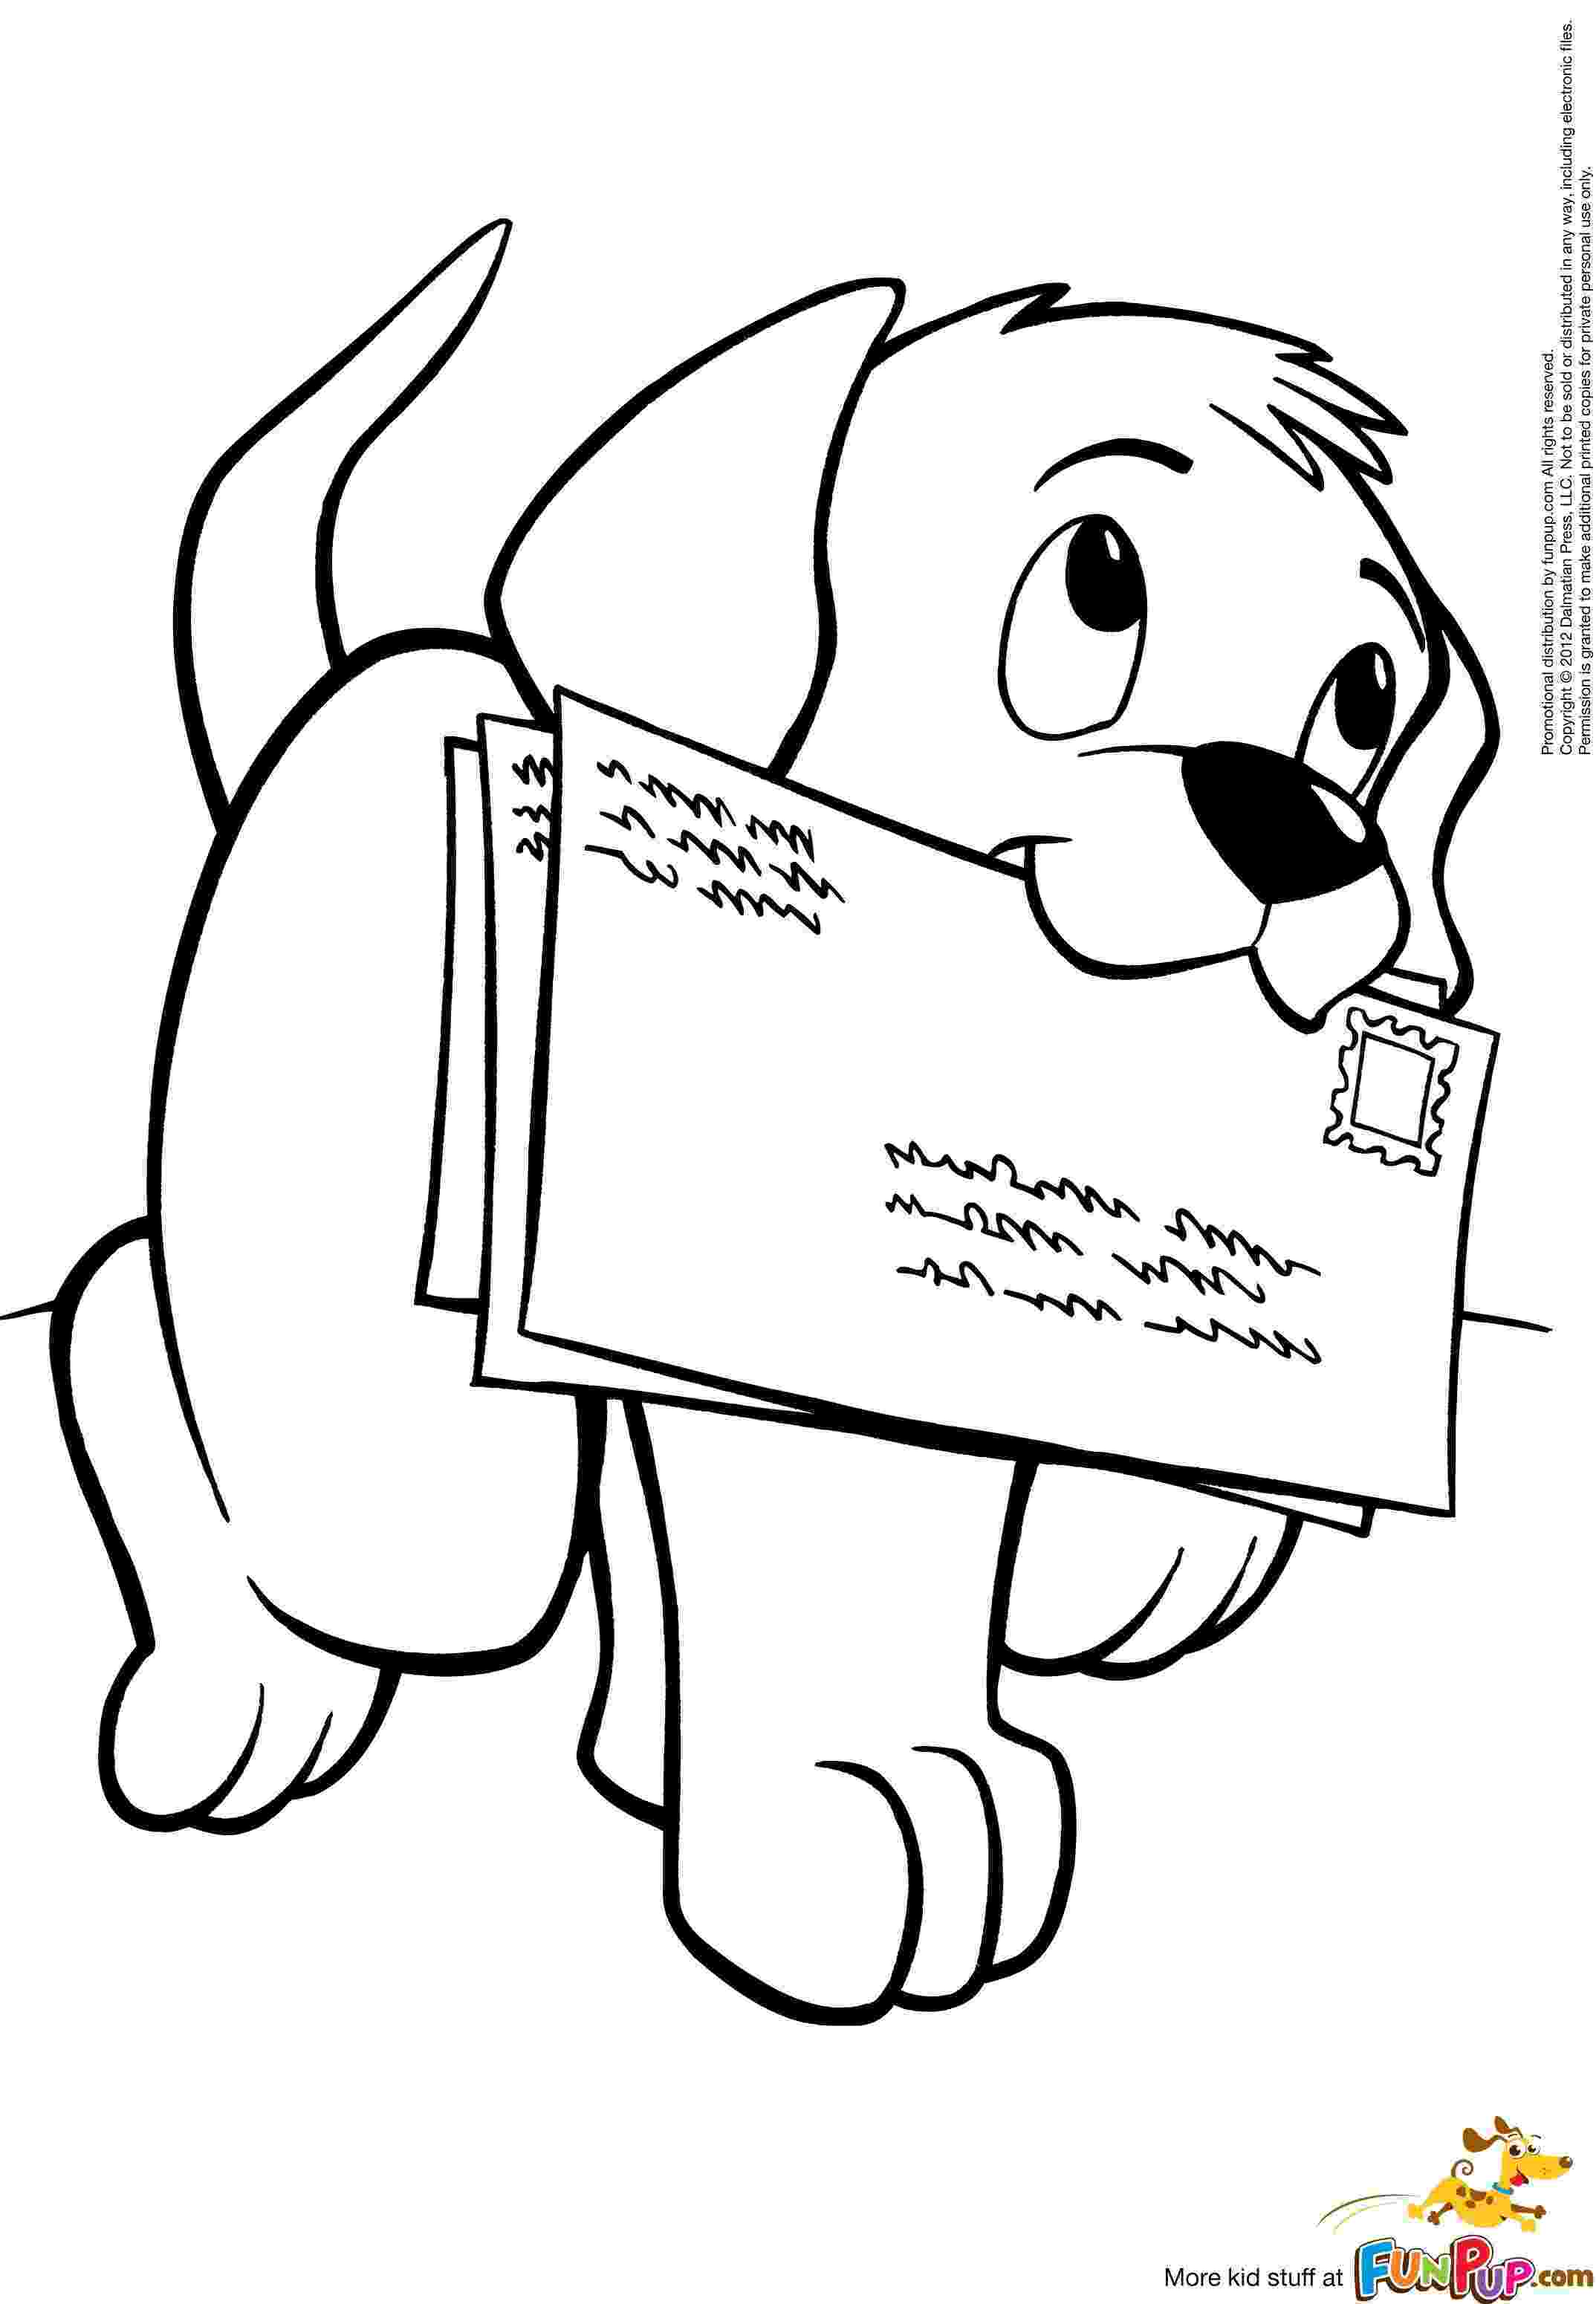 dog pictures to print out printable alphabet worksheets for toddlers dogfree pictures to out dog print